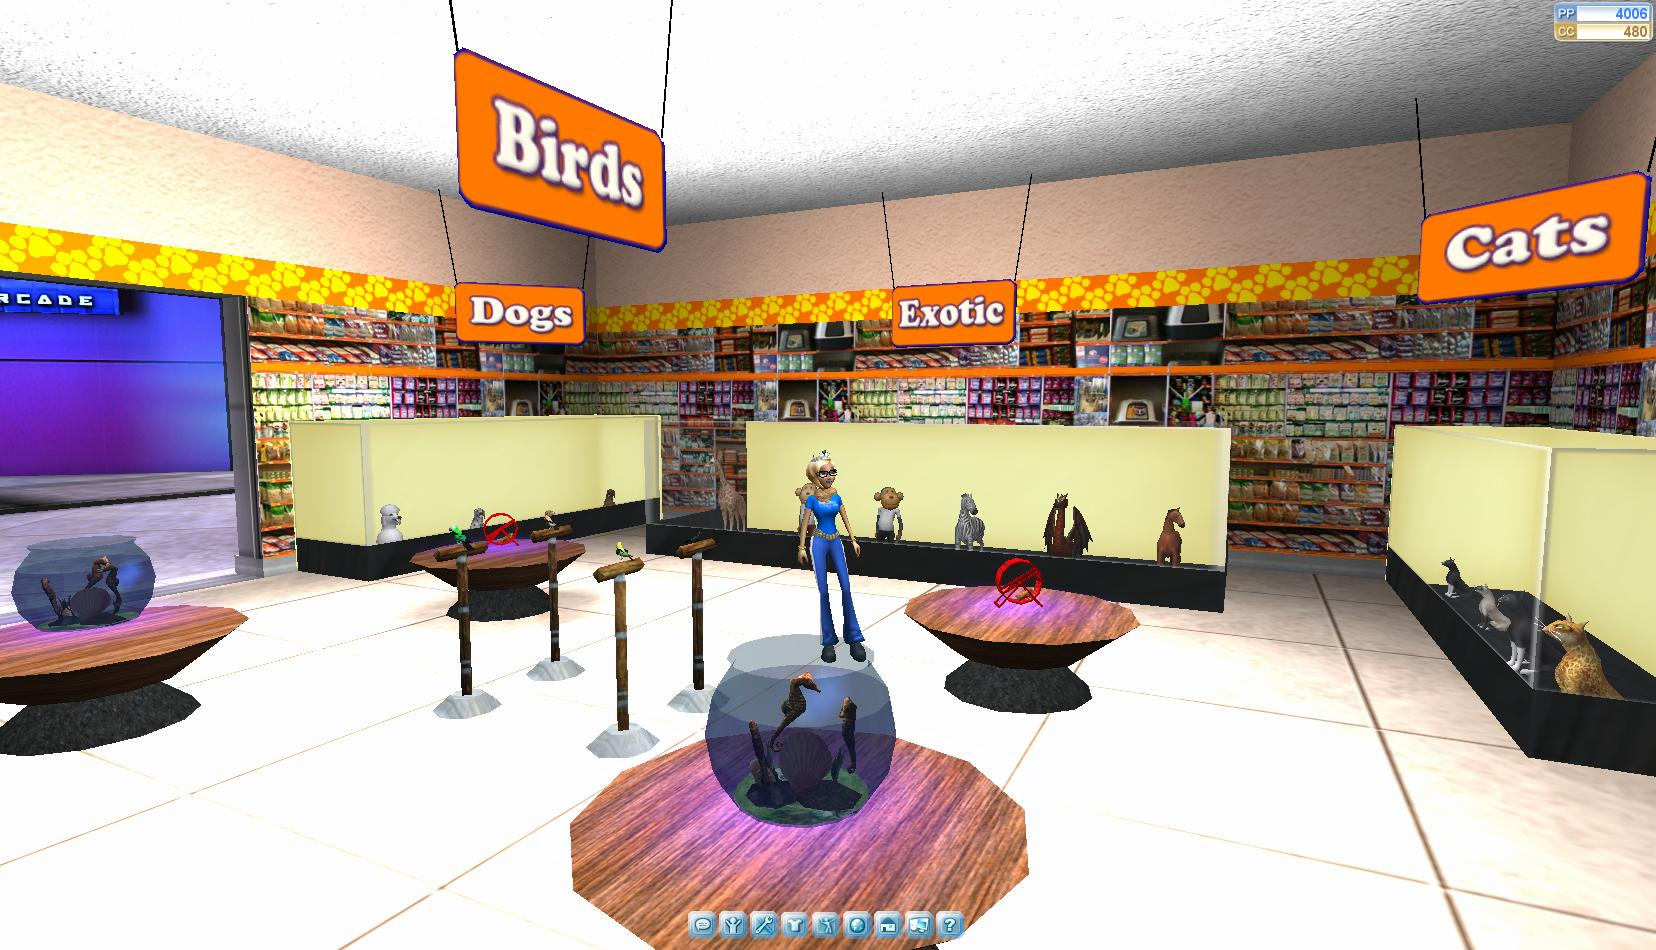 onverse a free online 3d virtual world unveils pets and a new action game. Black Bedroom Furniture Sets. Home Design Ideas